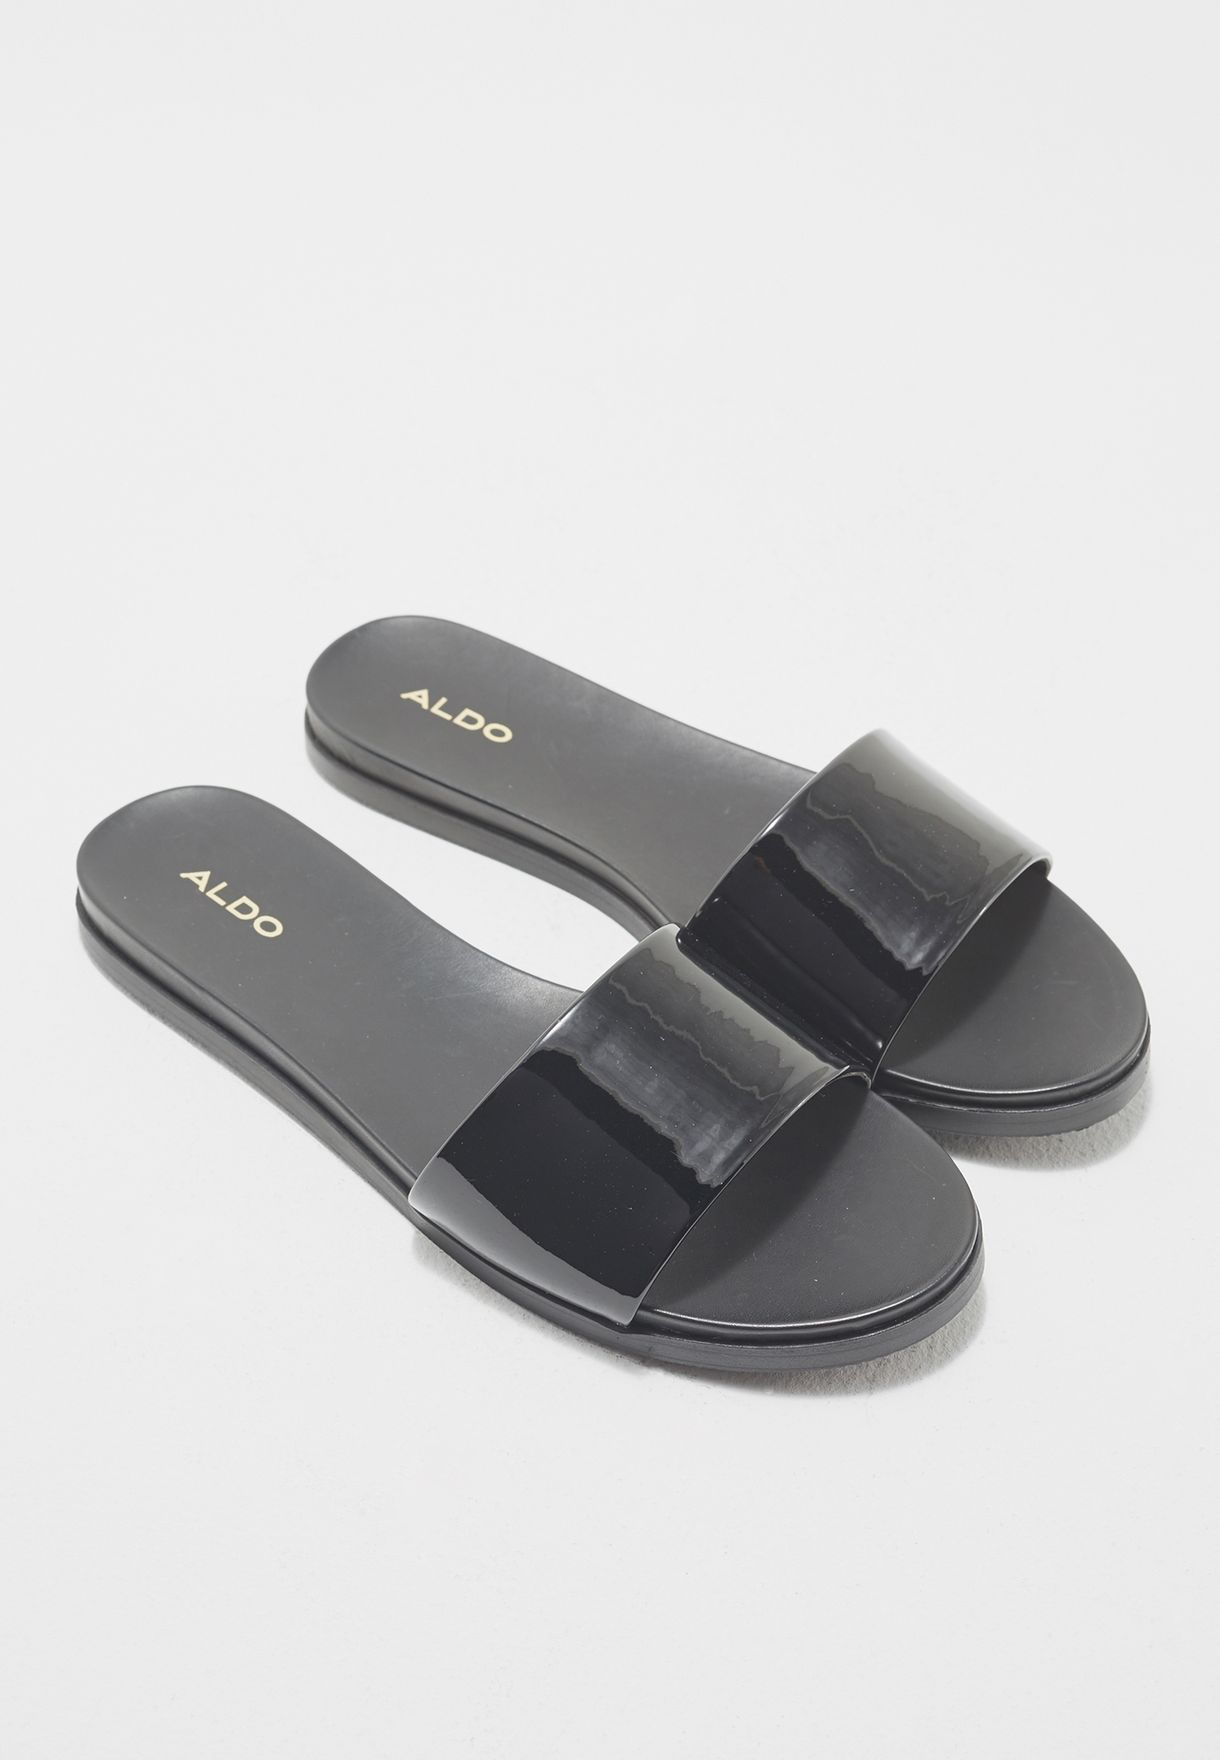 6a8c36f91e0 Shop Aldo black Fabrizzia Slide FABRIZZIA U95 for Women in Qatar -  AL729SH06DFT